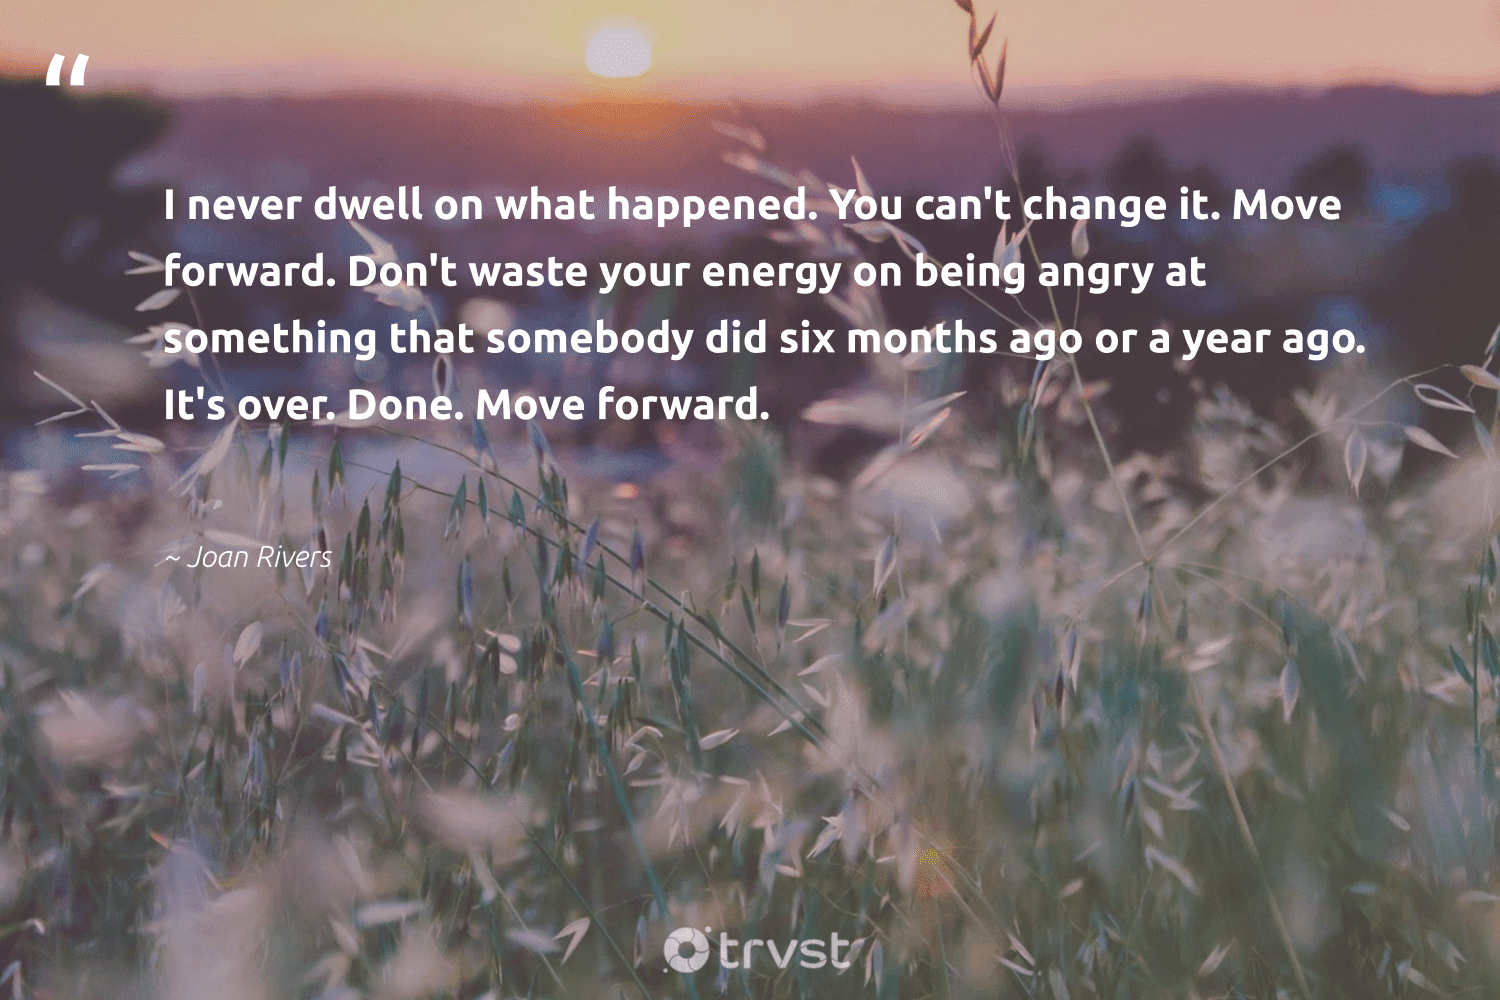 """""""I never dwell on what happened. You can't change it. Move forward. Don't waste your energy on being angry at something that somebody did six months ago or a year ago. It's over. Done. Move forward.""""  - Joan Rivers #trvst #quotes #waste #energy #begreat #bethechange #mindset #planetearthfirst #health #gogreen #changemakers #collectiveaction"""